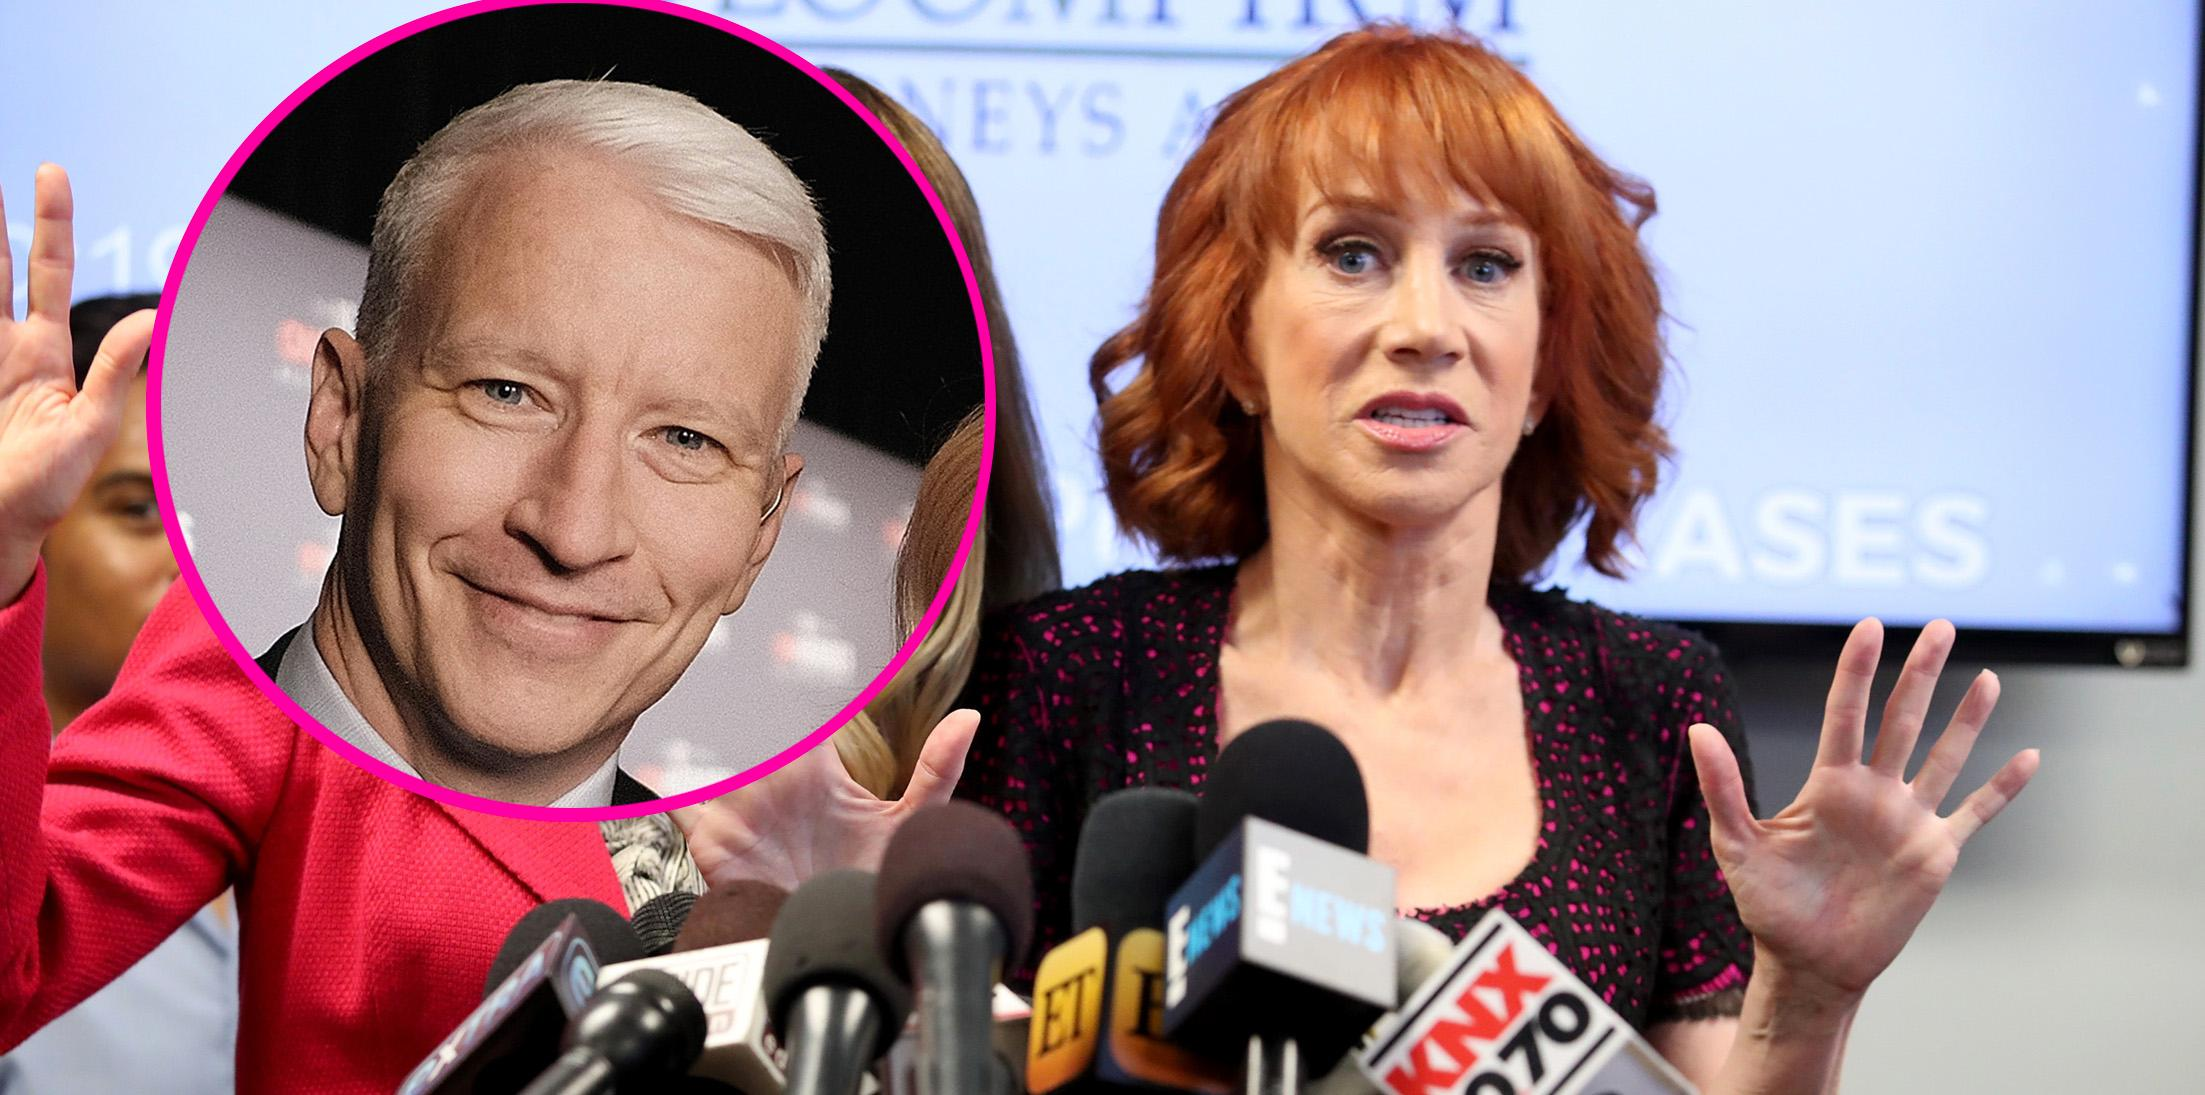 Kathy griffin betrayed anderson cooper feature